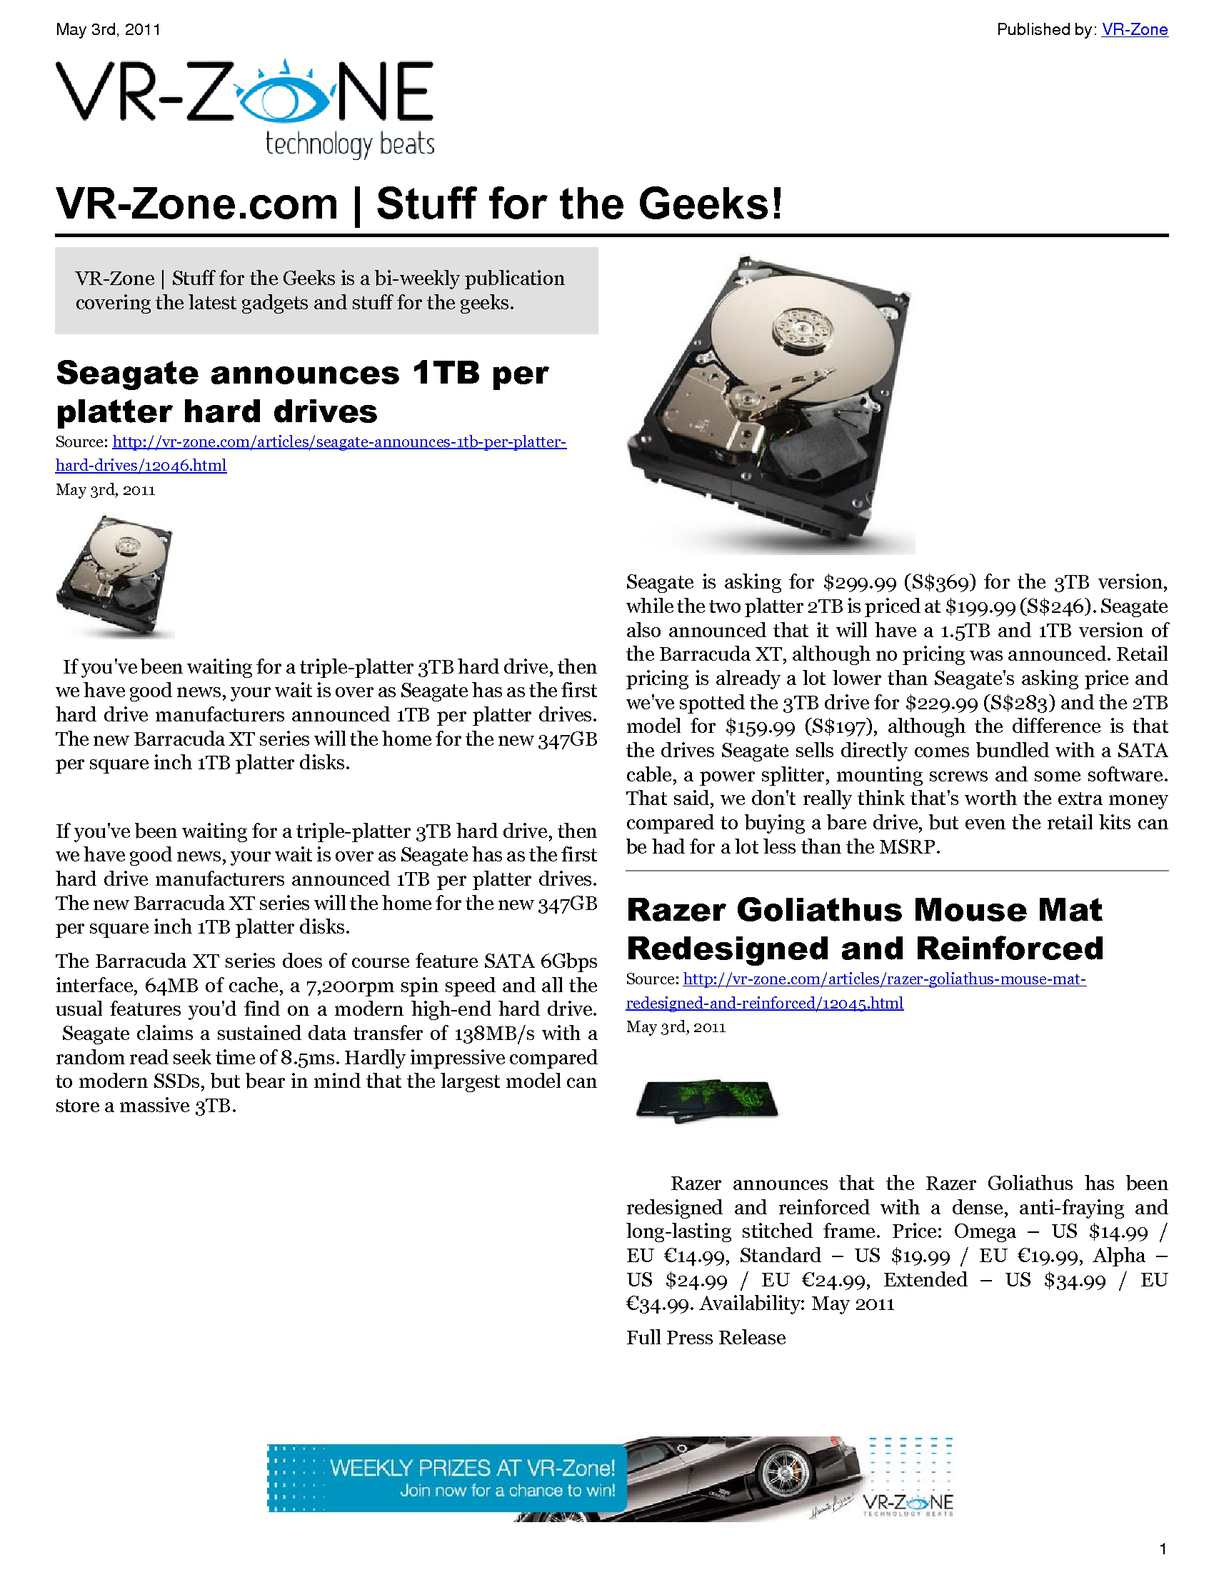 Calamo Vr Zone Tech News For The Geeks May 2011 Issue Breaker Load Http Www Shopping Com Square Enix D Co